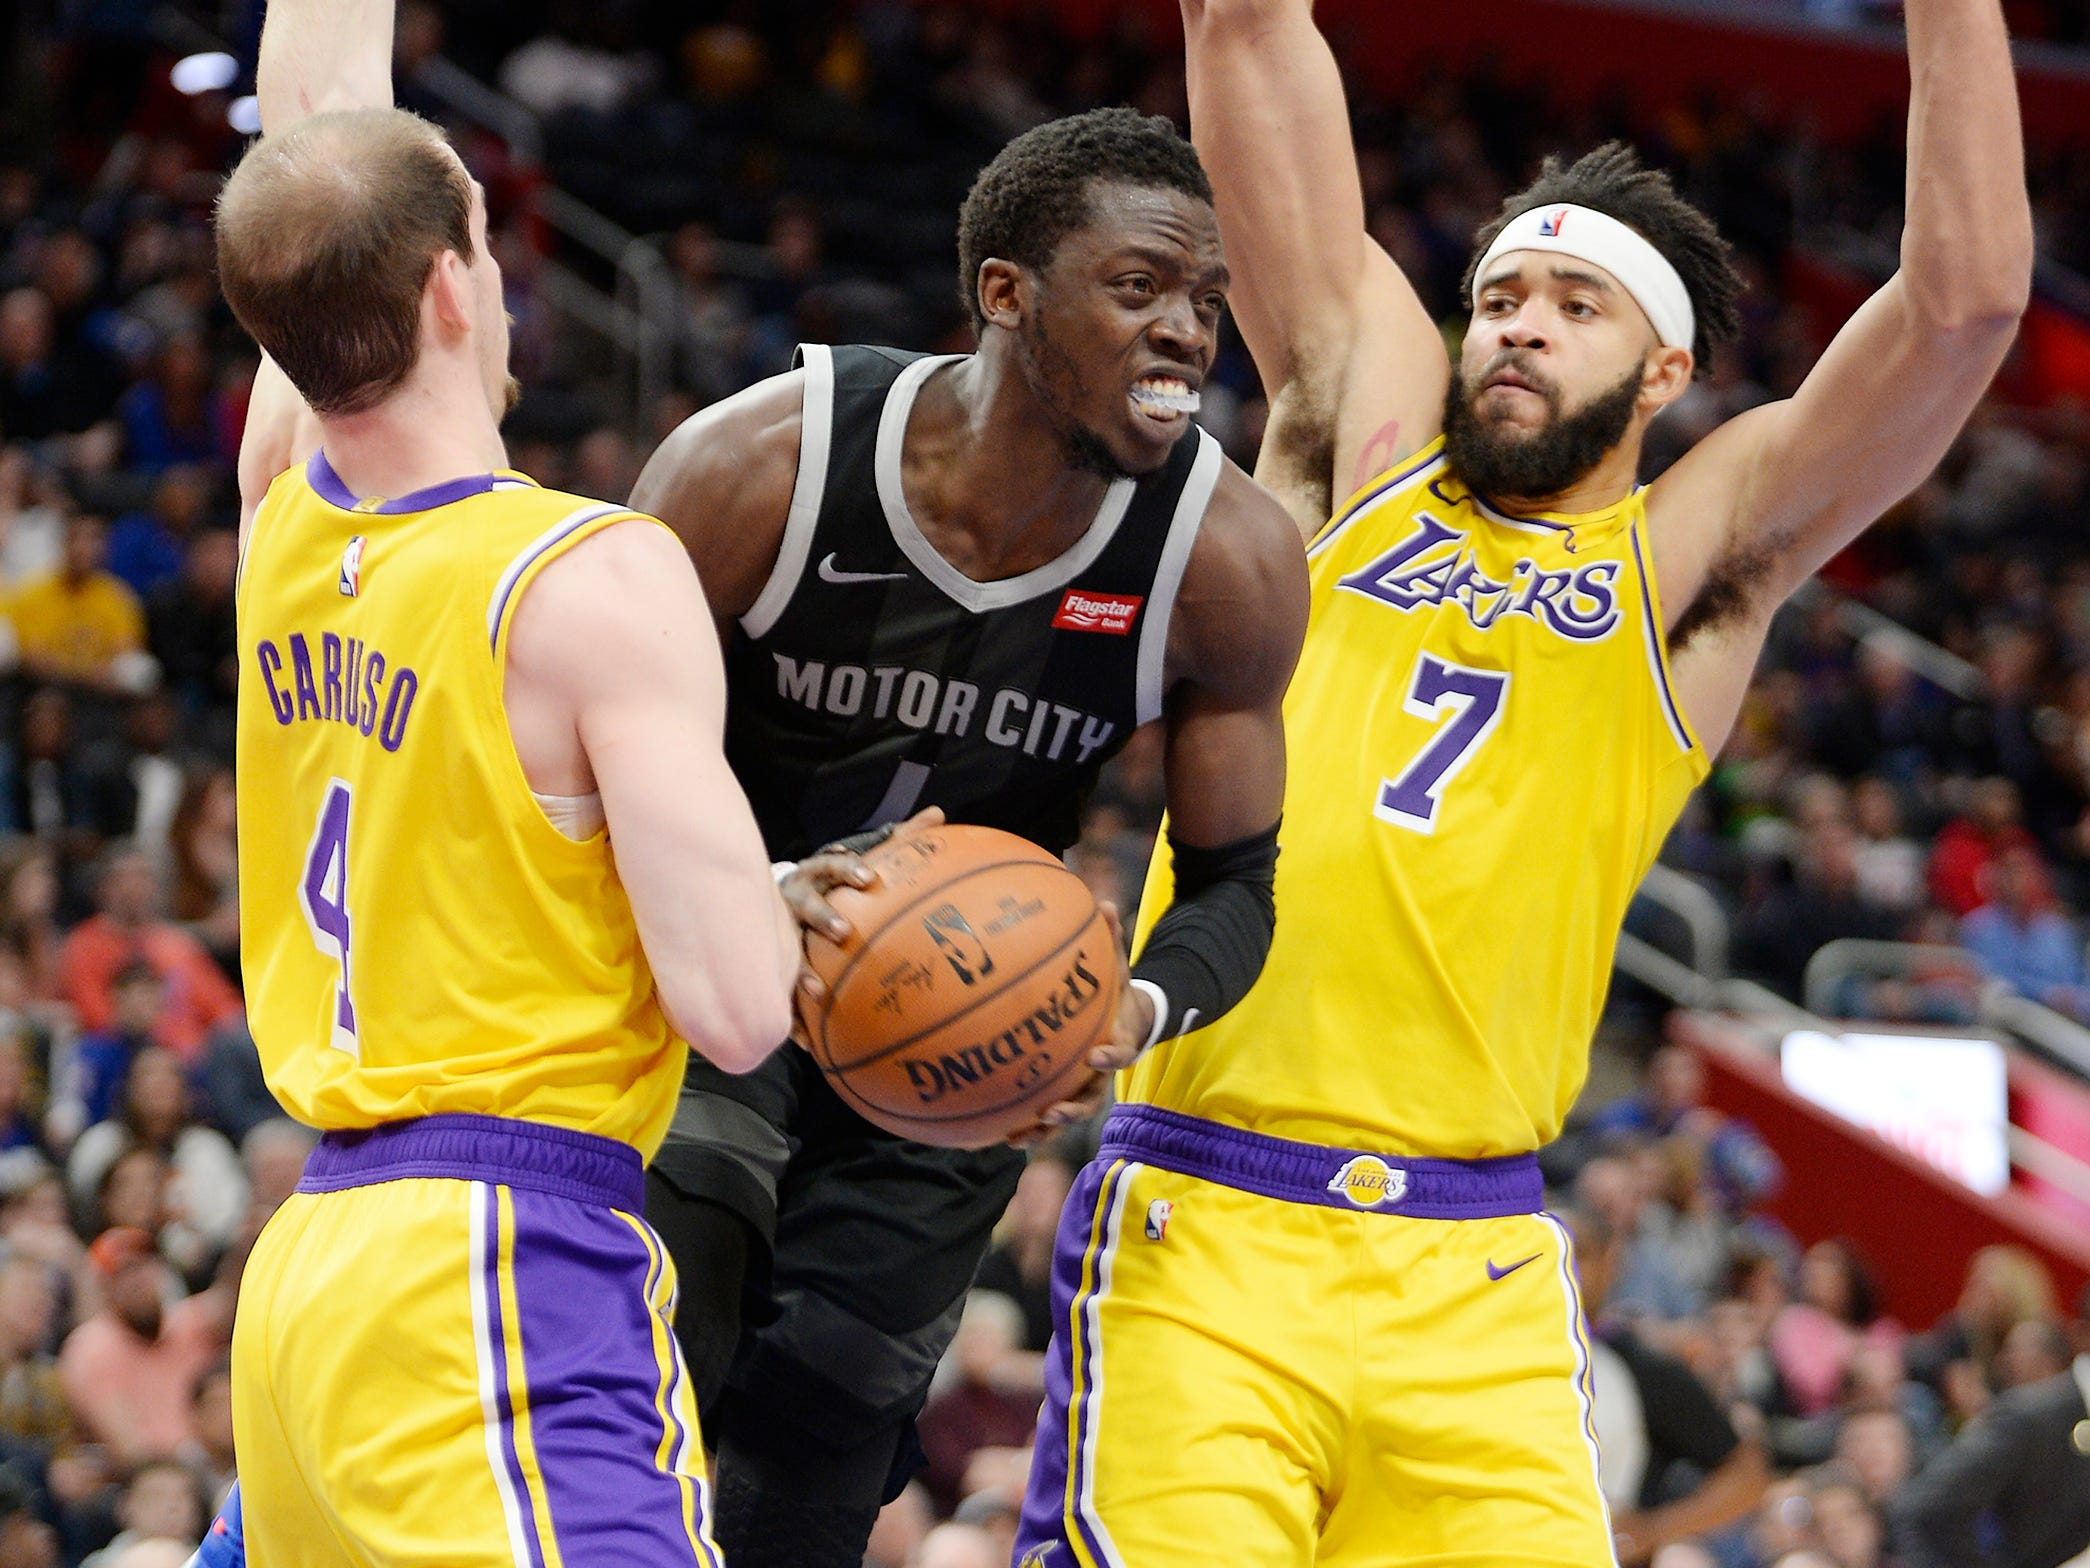 Pistons' Reggie Jackson is fouled by Lakers' Alex Caruso, (l), in the second quarter.